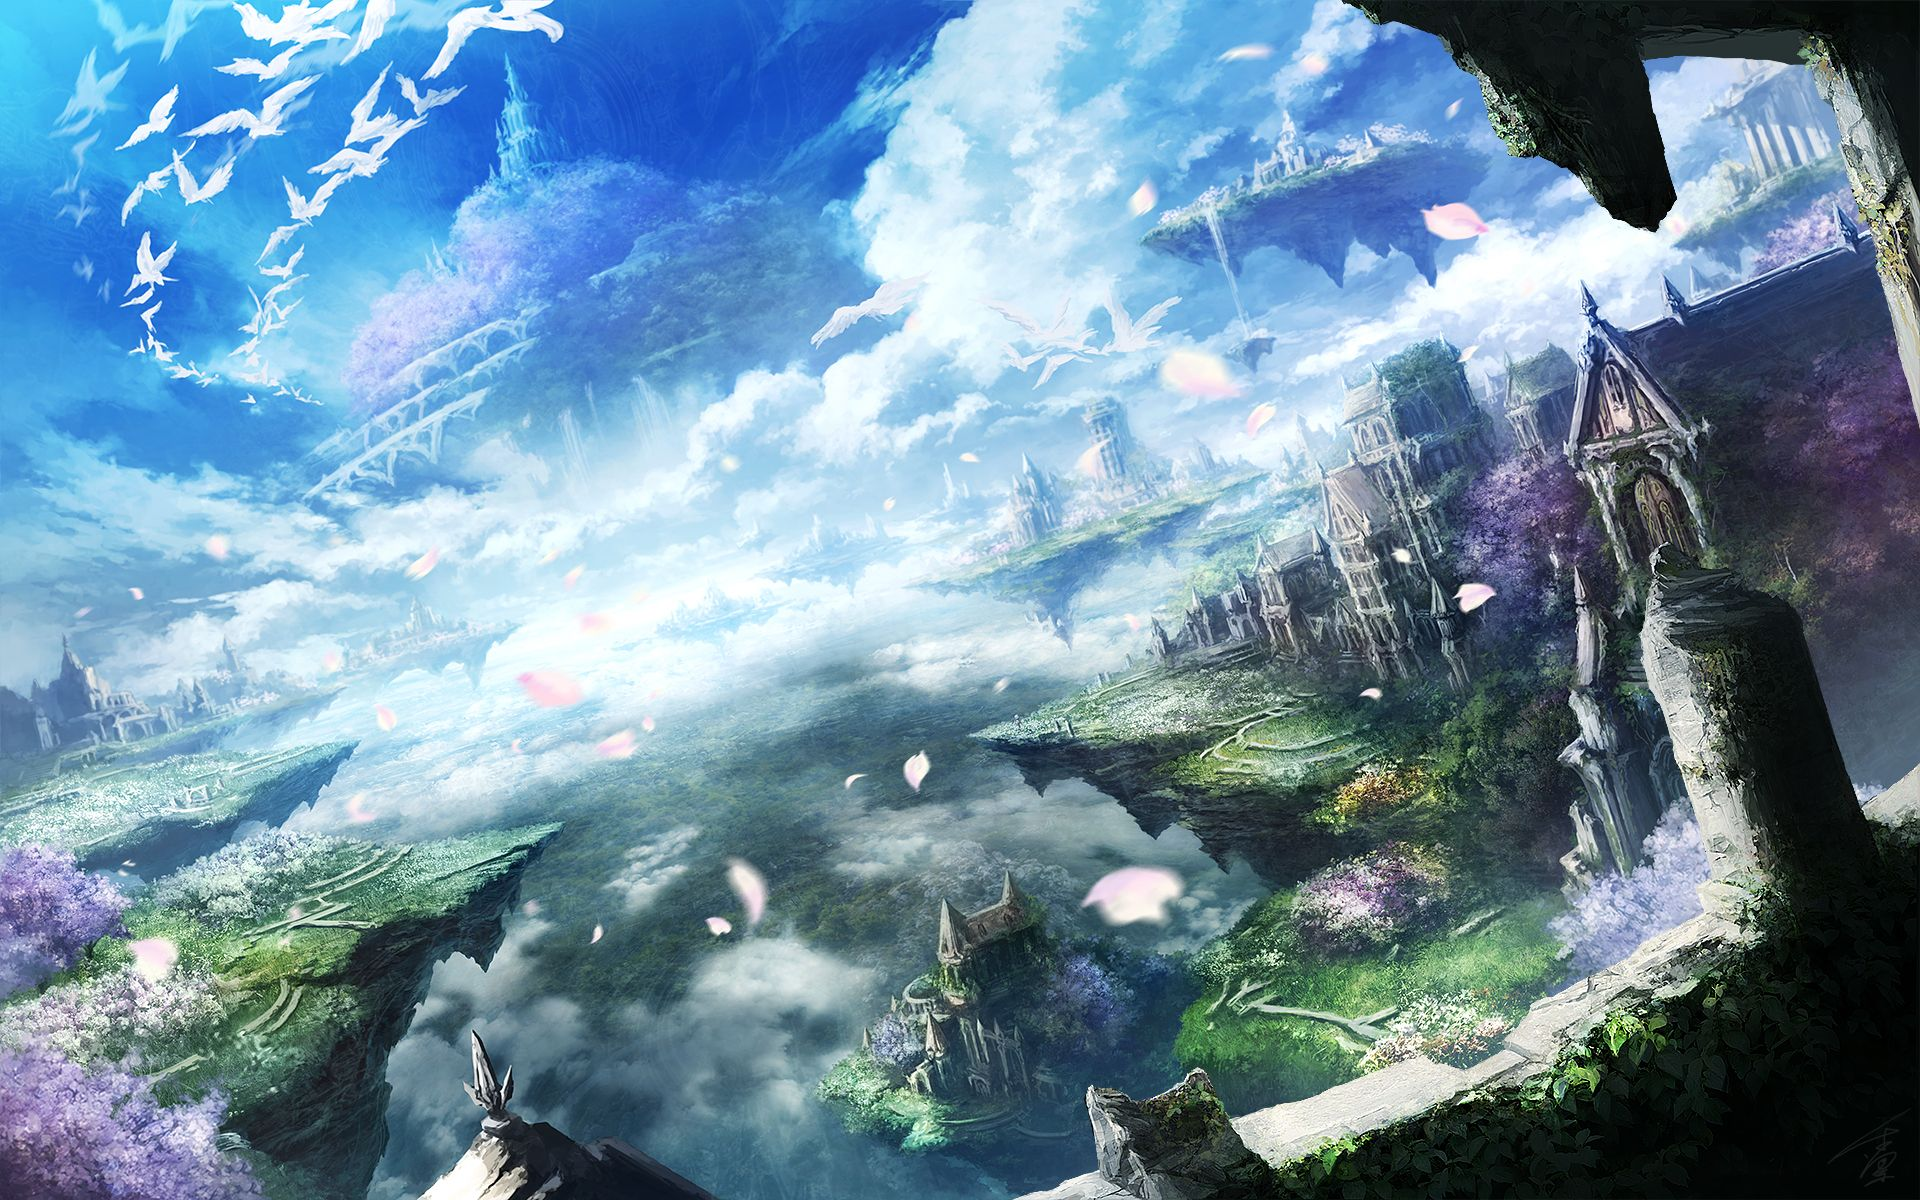 Beautiful Anime Landscapes Hd Wallpaper From Gallsource Com Seni Animasi